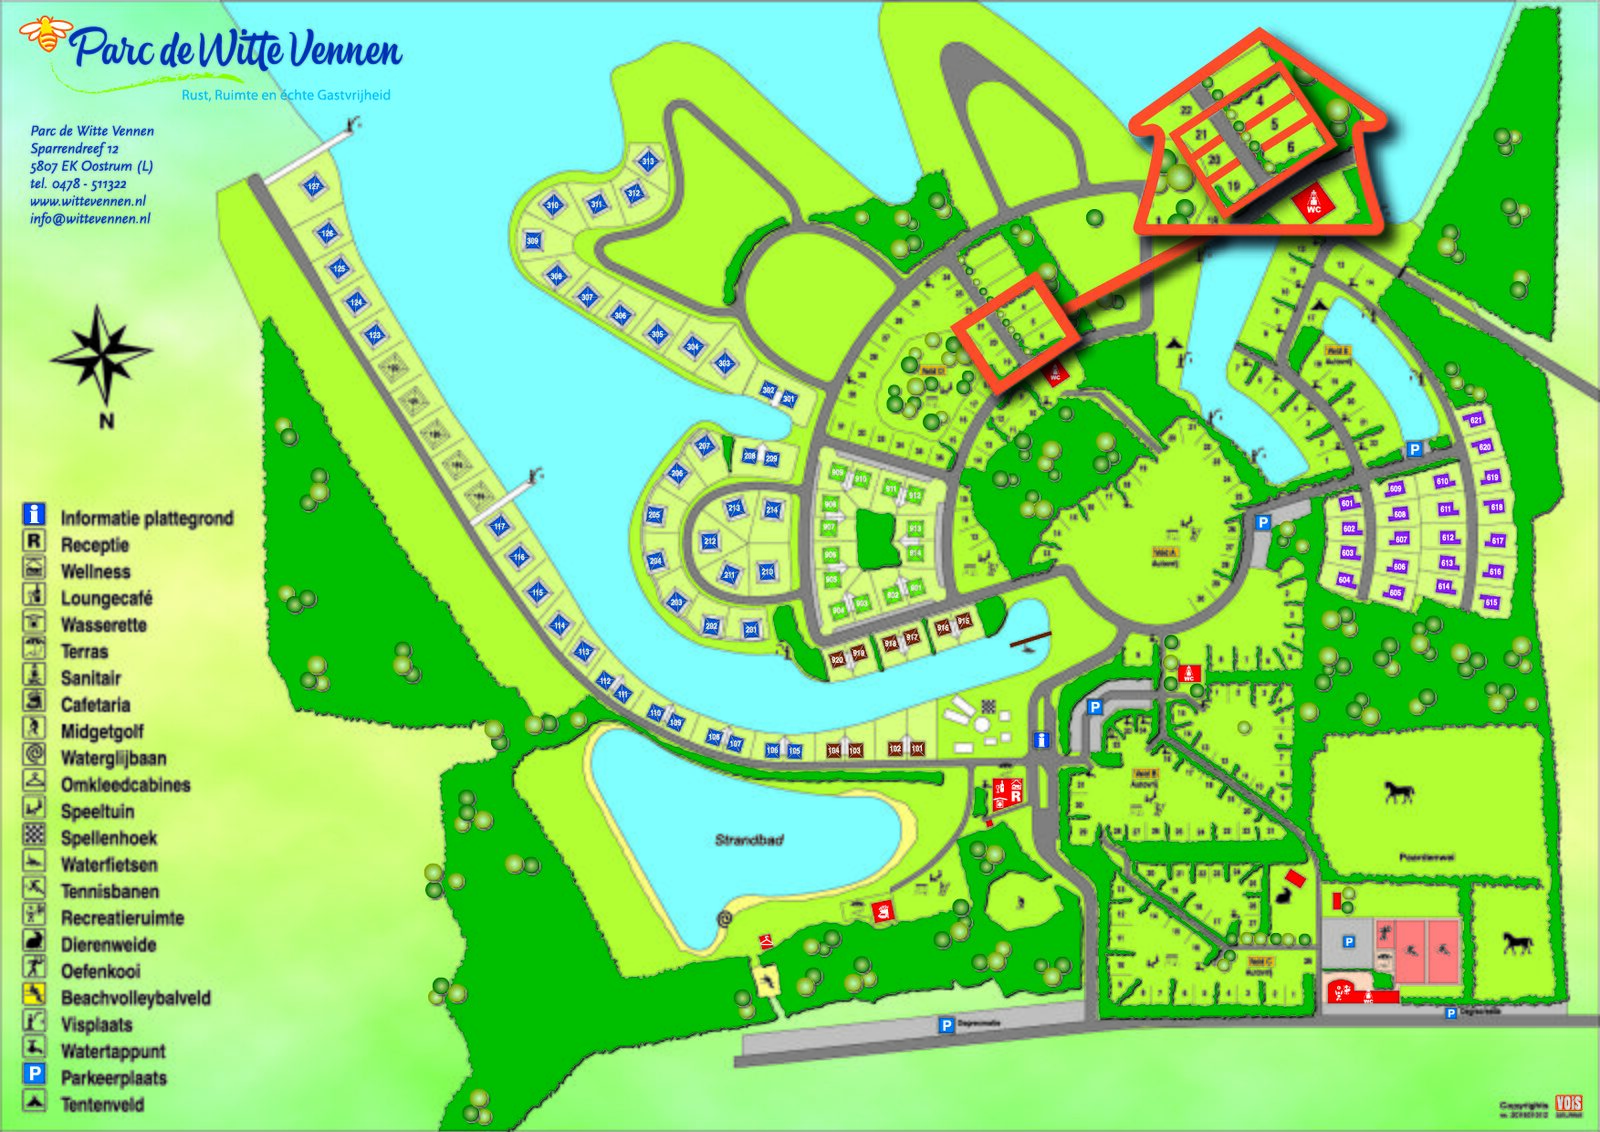 Map of Parc de Witte Vennen